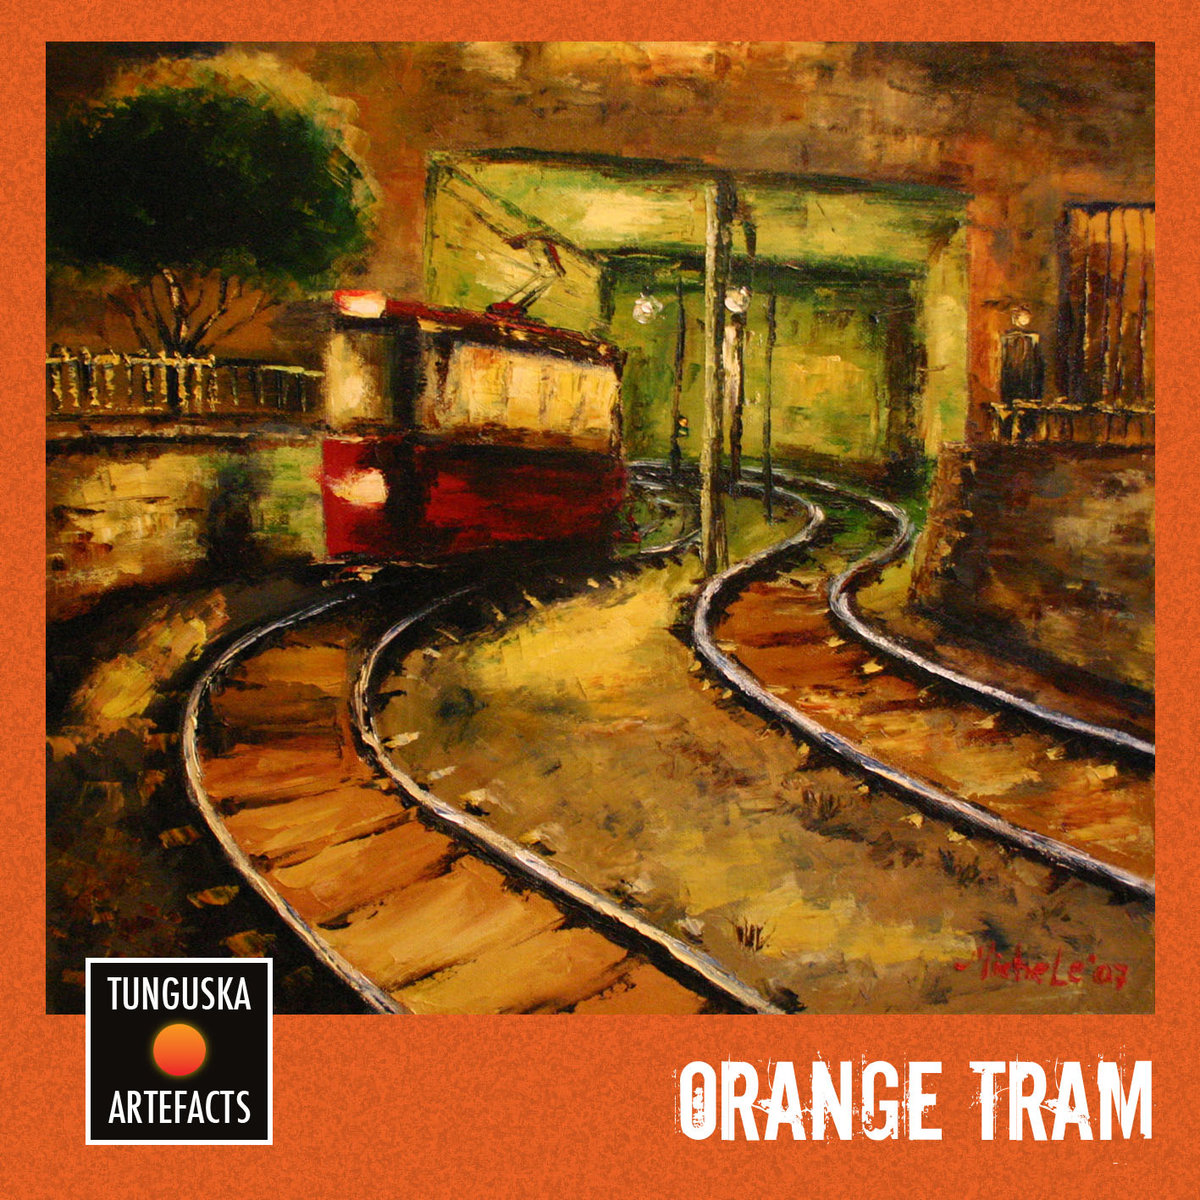 Argonika & Alone in the Chaos - Flight Of The Spirit By The Voivod's Methodic @ 'Tunguska Artefacts - Orange Tram' album (electronic, ambient)